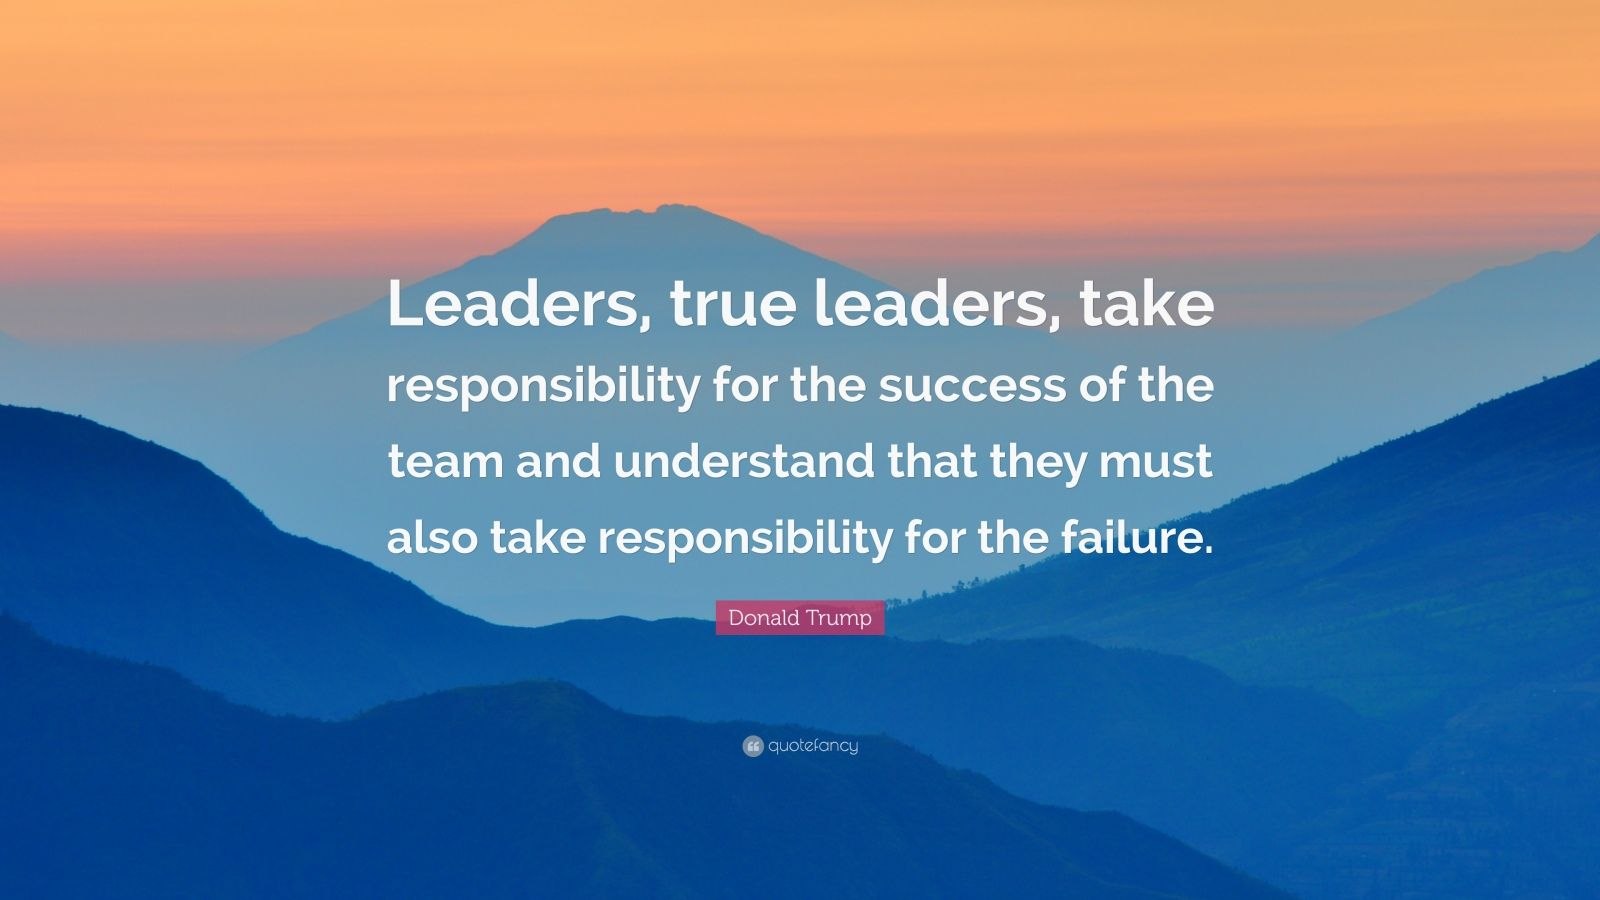 """Donald Trump Quote: """"Leaders, true leaders, take responsibility for the success of the team and understand that they must also take responsibility for the failure."""""""